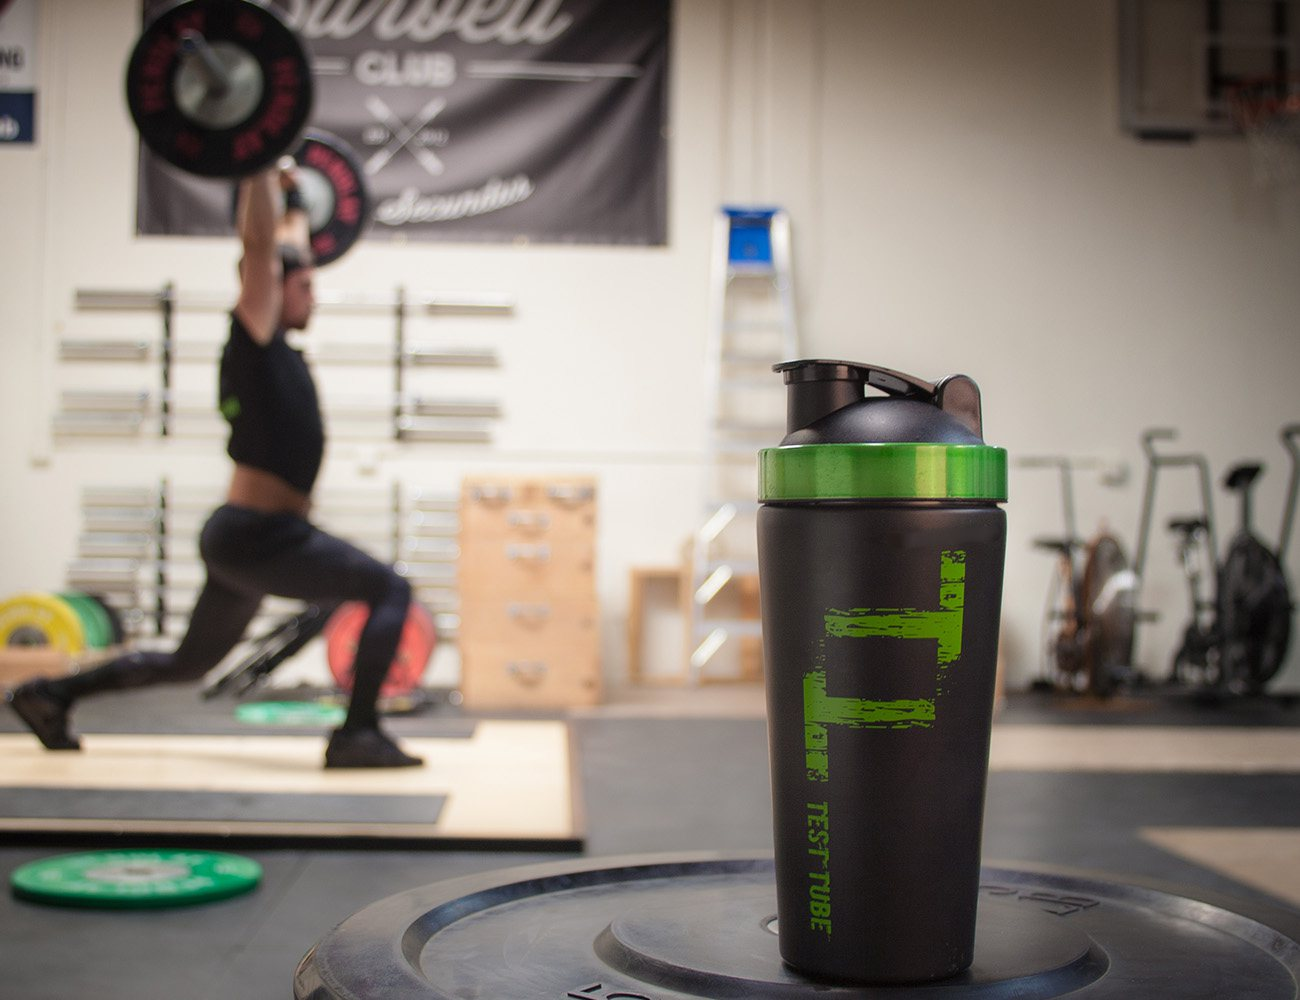 The Test Tube Protein Shaker